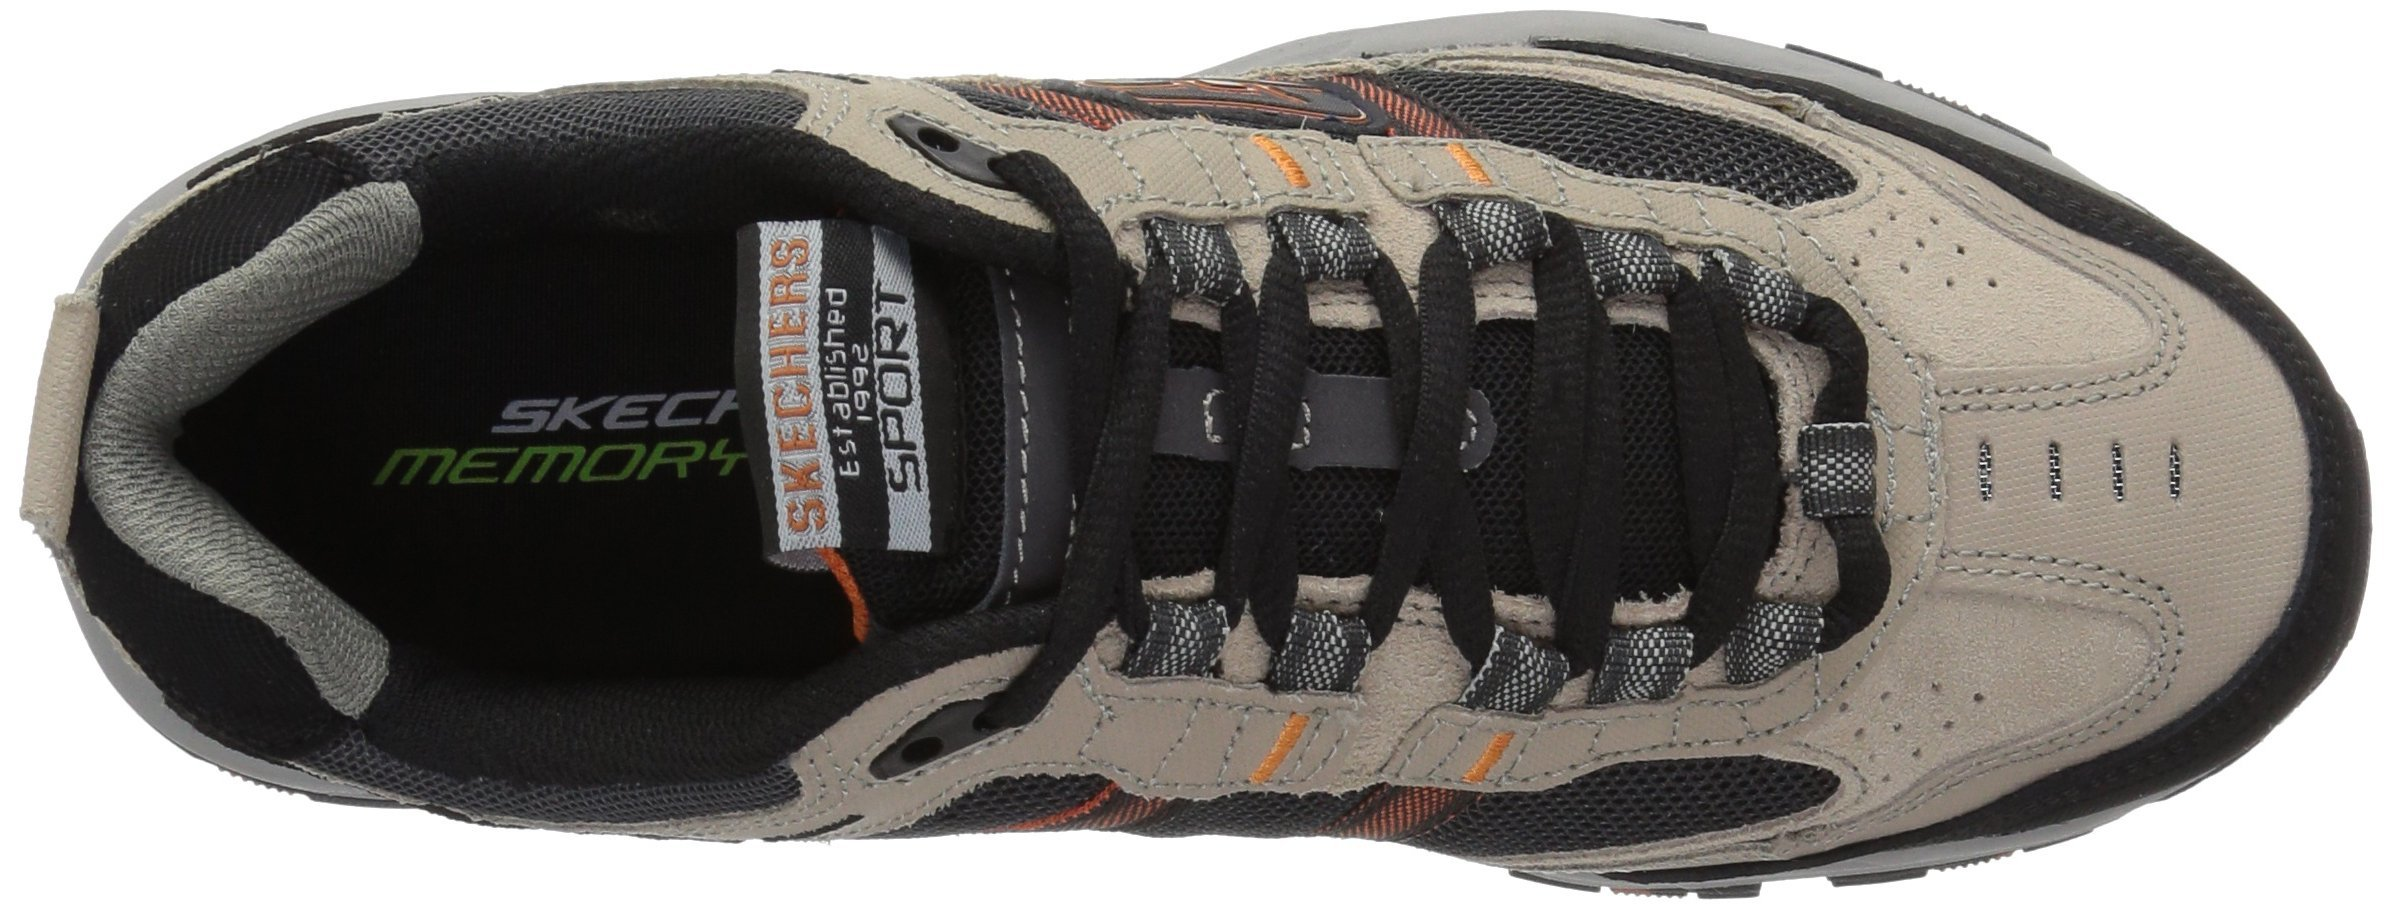 Skechers Sport Men's Vigor 2.0 Trait Memory Foam Sneaker, Taupe/Black, 7 M US by Skechers (Image #8)